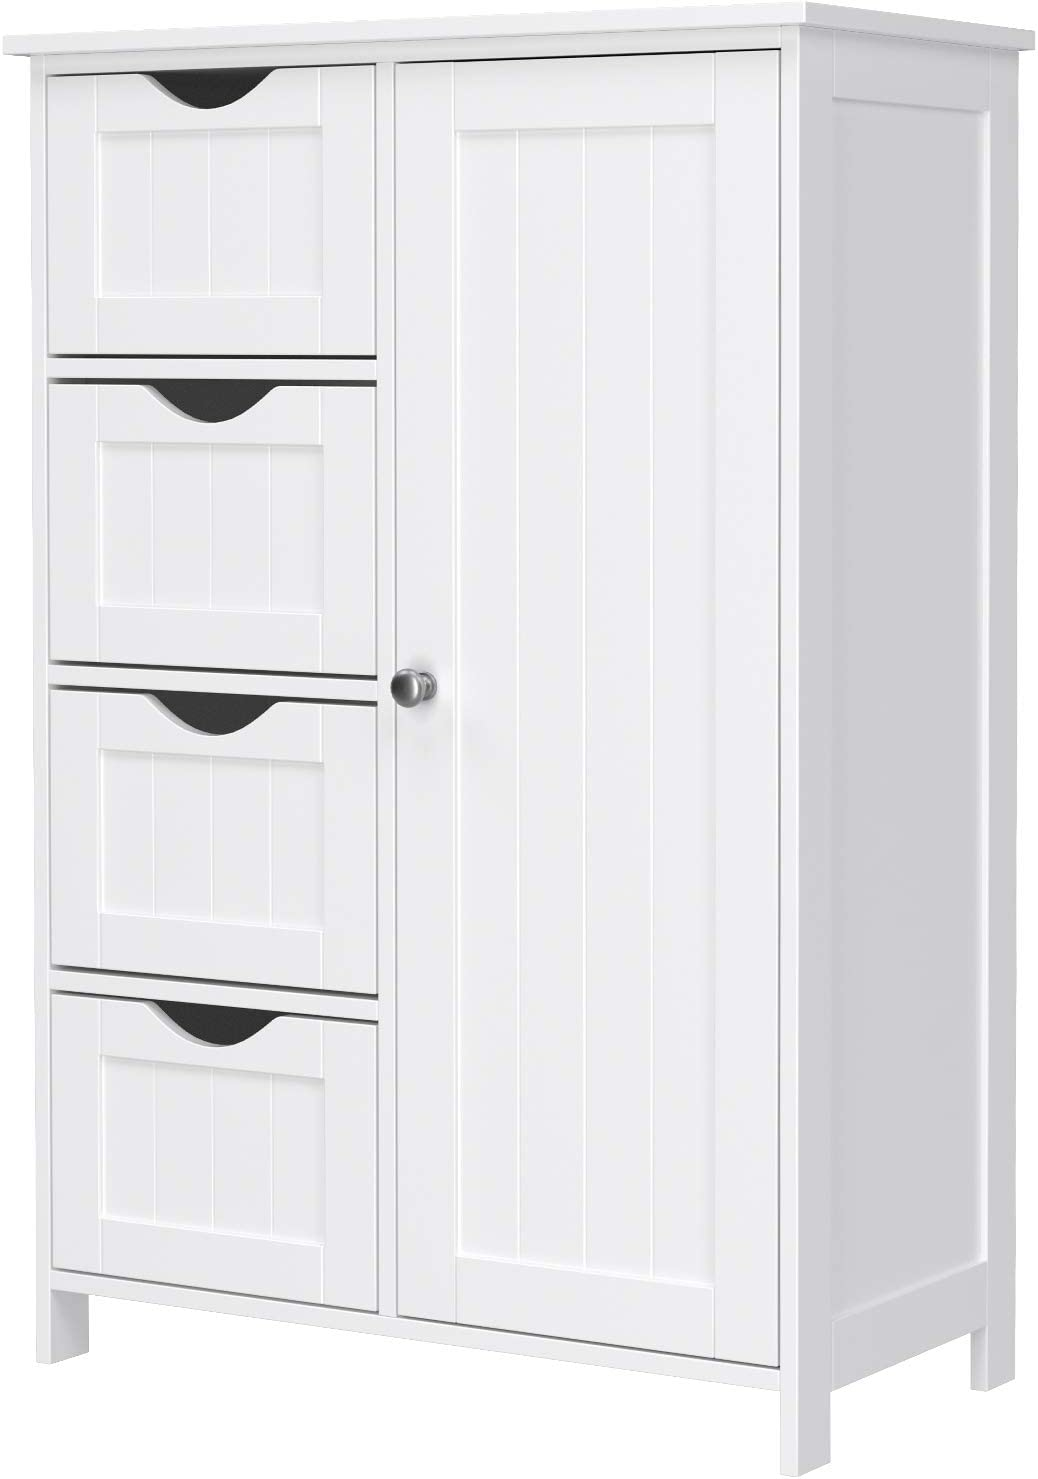 VASAGLE Bathroom Floor Storage Cabinet, Wooden Storage Unit with 4 Drawers, Single Door, Adjustable Shelf, for Living Room, Kitchen, Entryway, White LHC41W